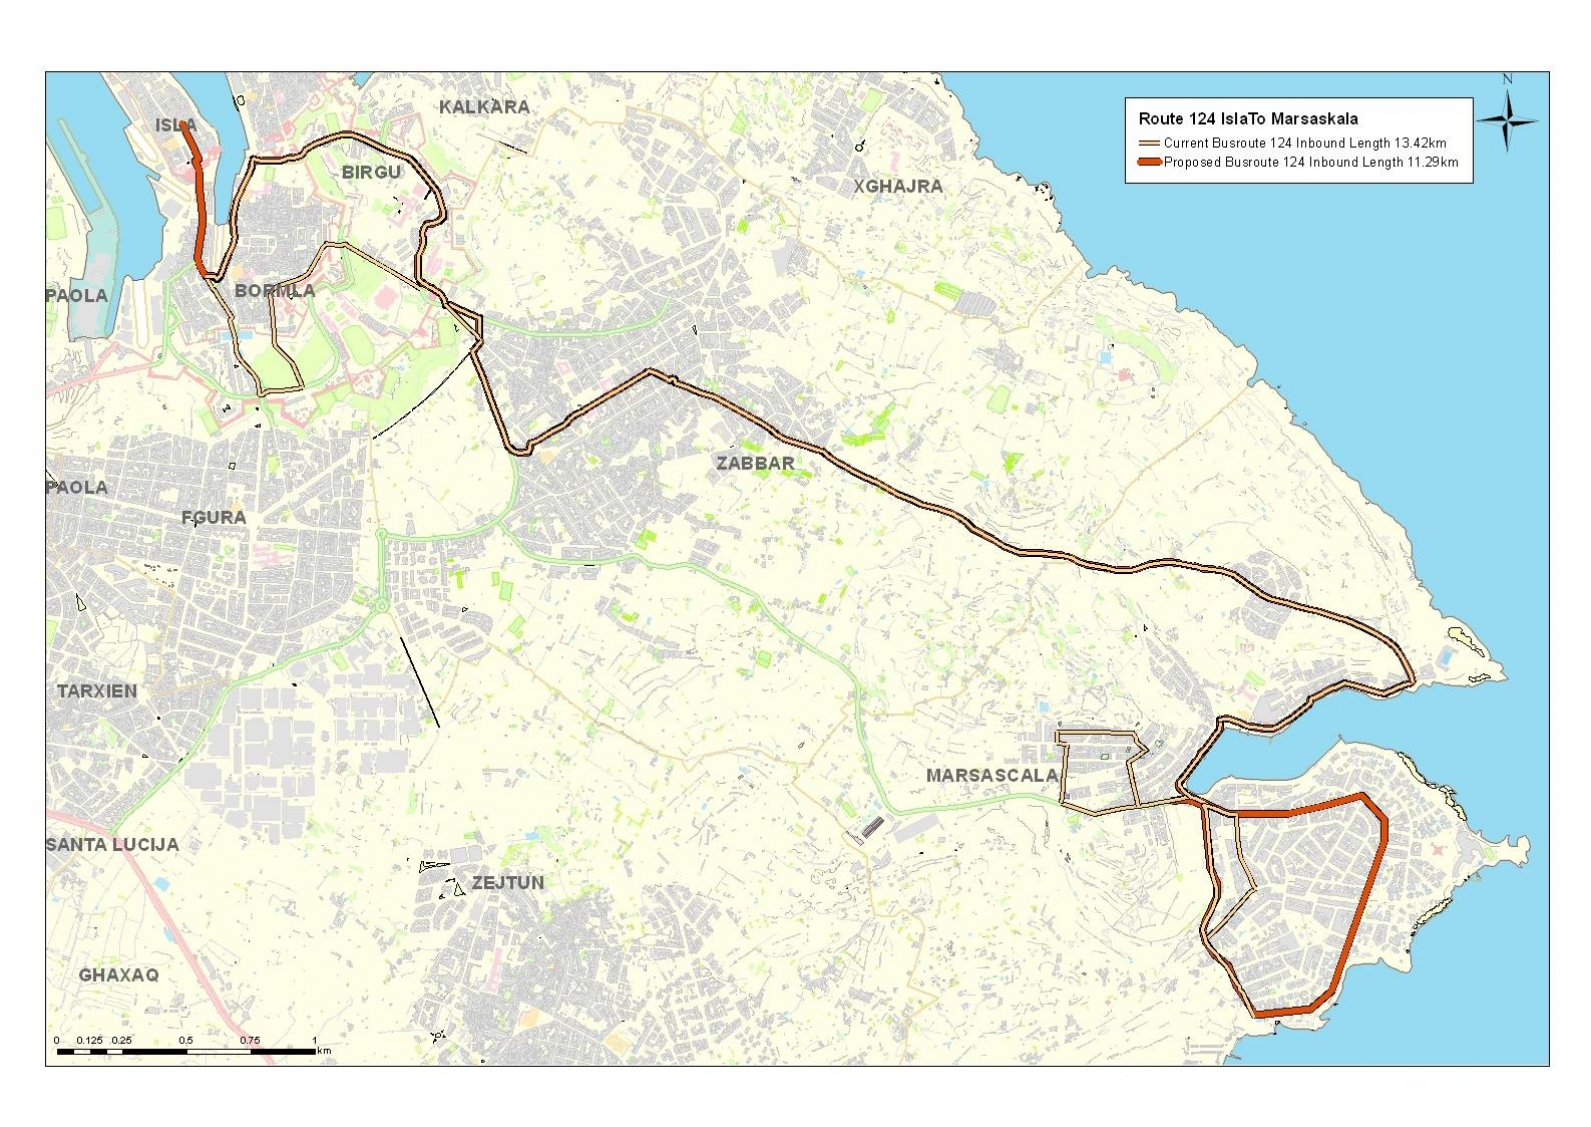 Land-current-network-routes-and-schedules-Cottonera-birgu-bormla-isla-kalkara-9